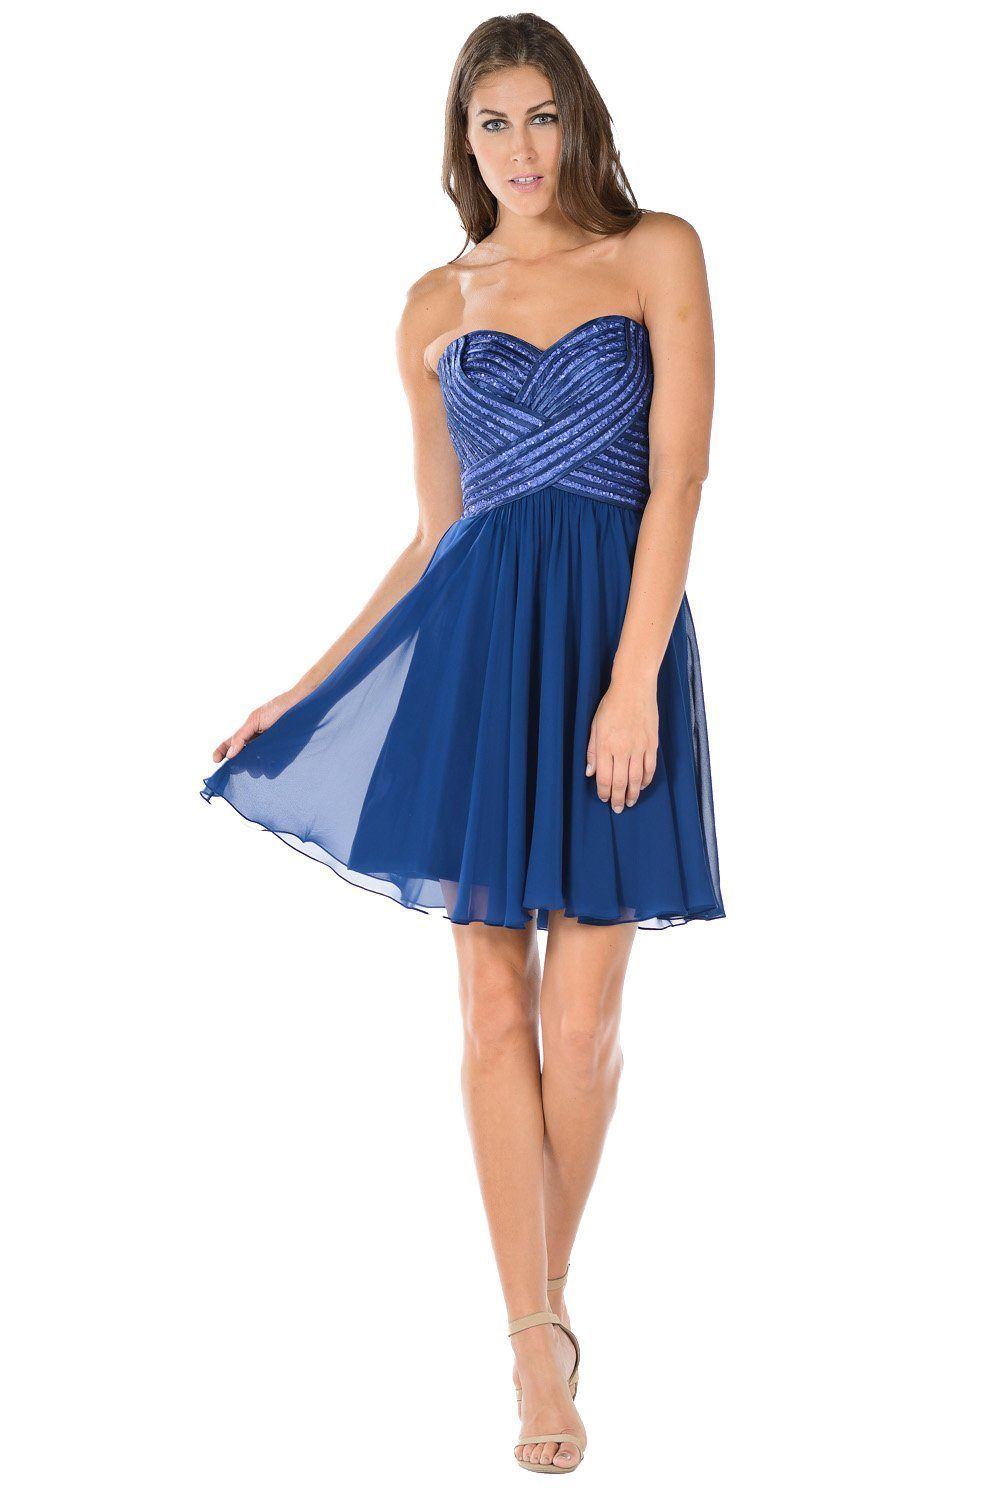 Navy Short Strapless Dress With Sequined Top By Poly Usa In 2021 Strapless Dresses Short Aqua Dress Off White Dresses [ 1500 x 1000 Pixel ]